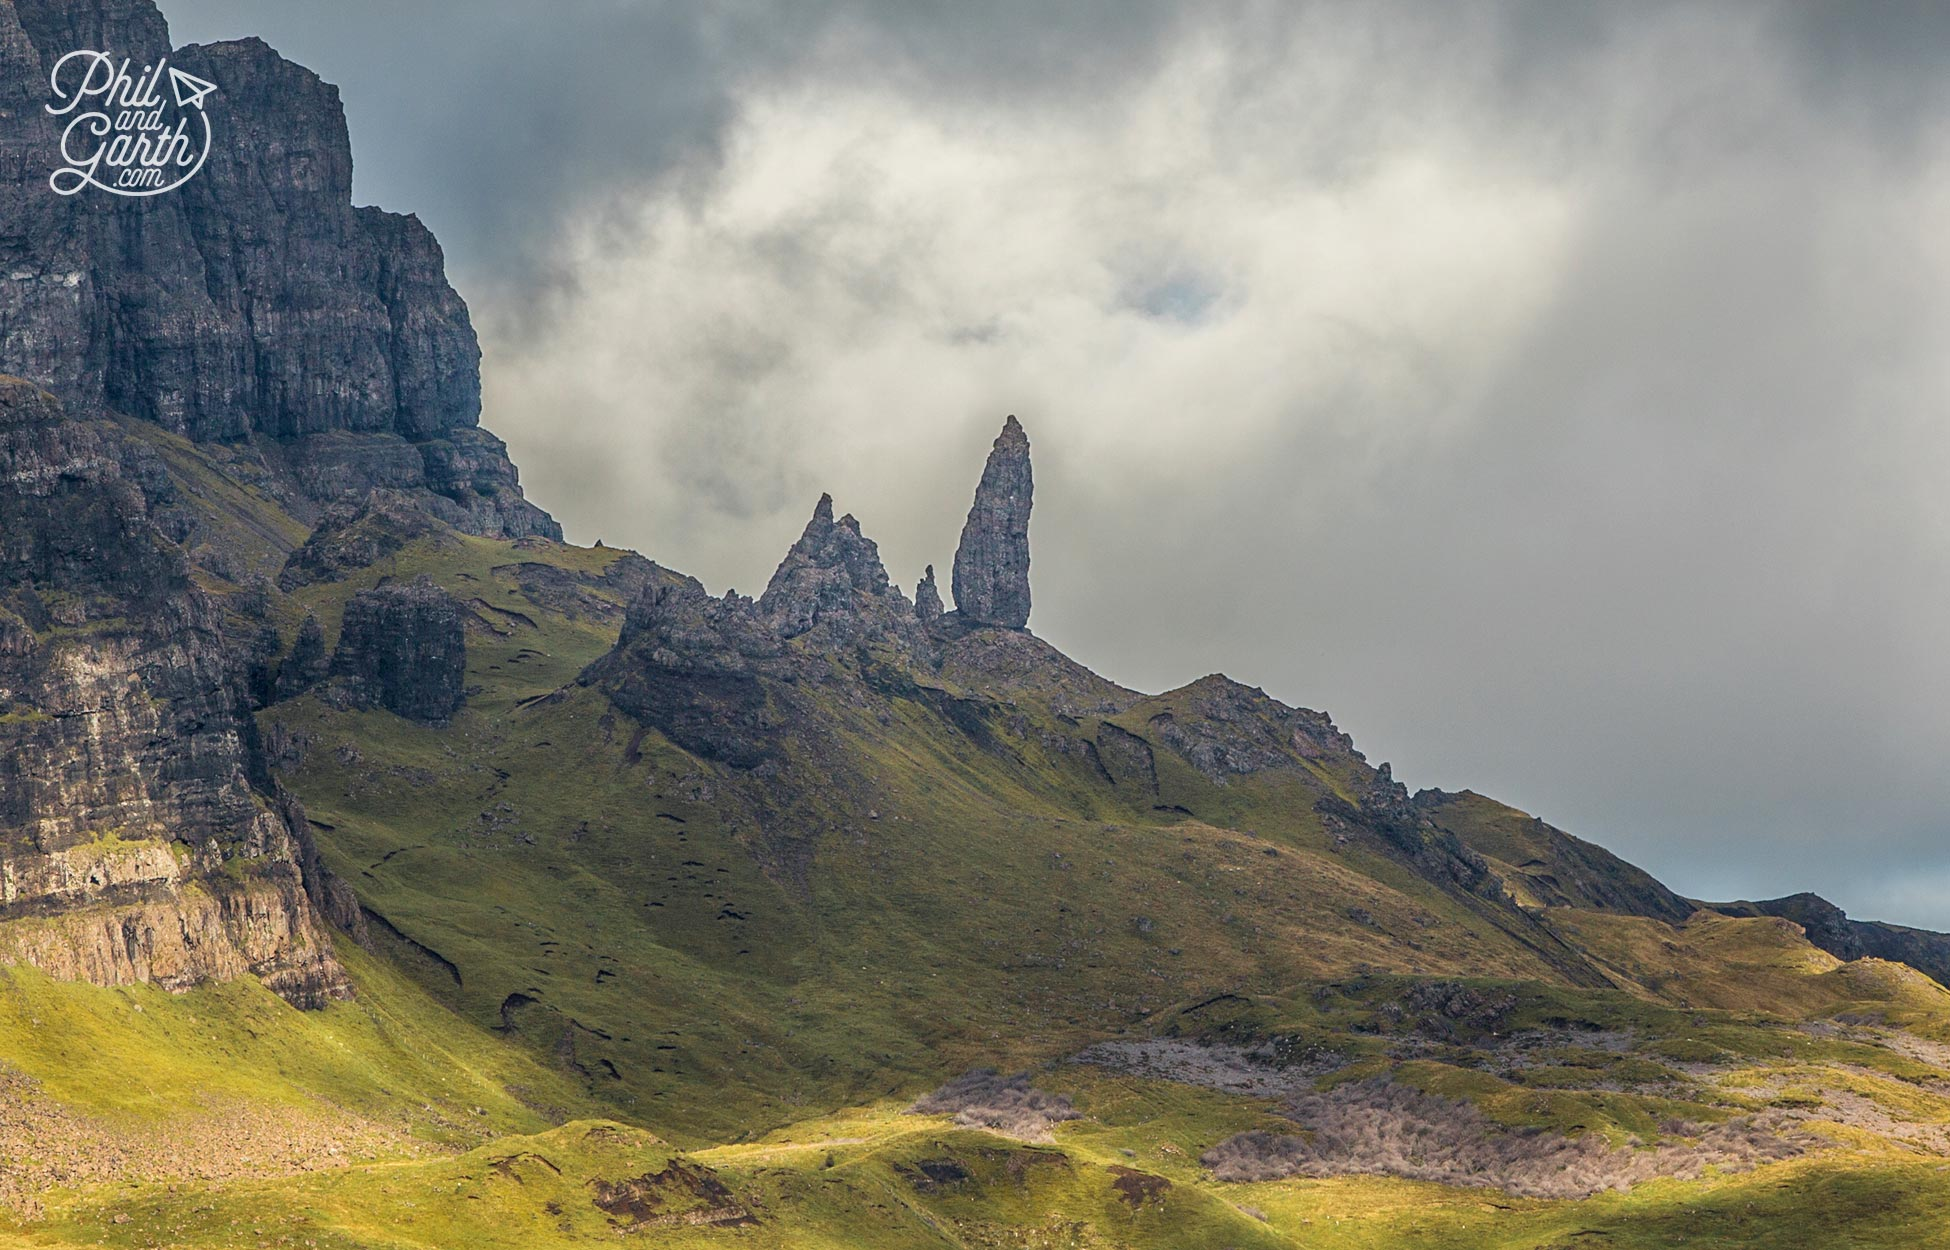 The Old Man of Storr stands 50 metres tall